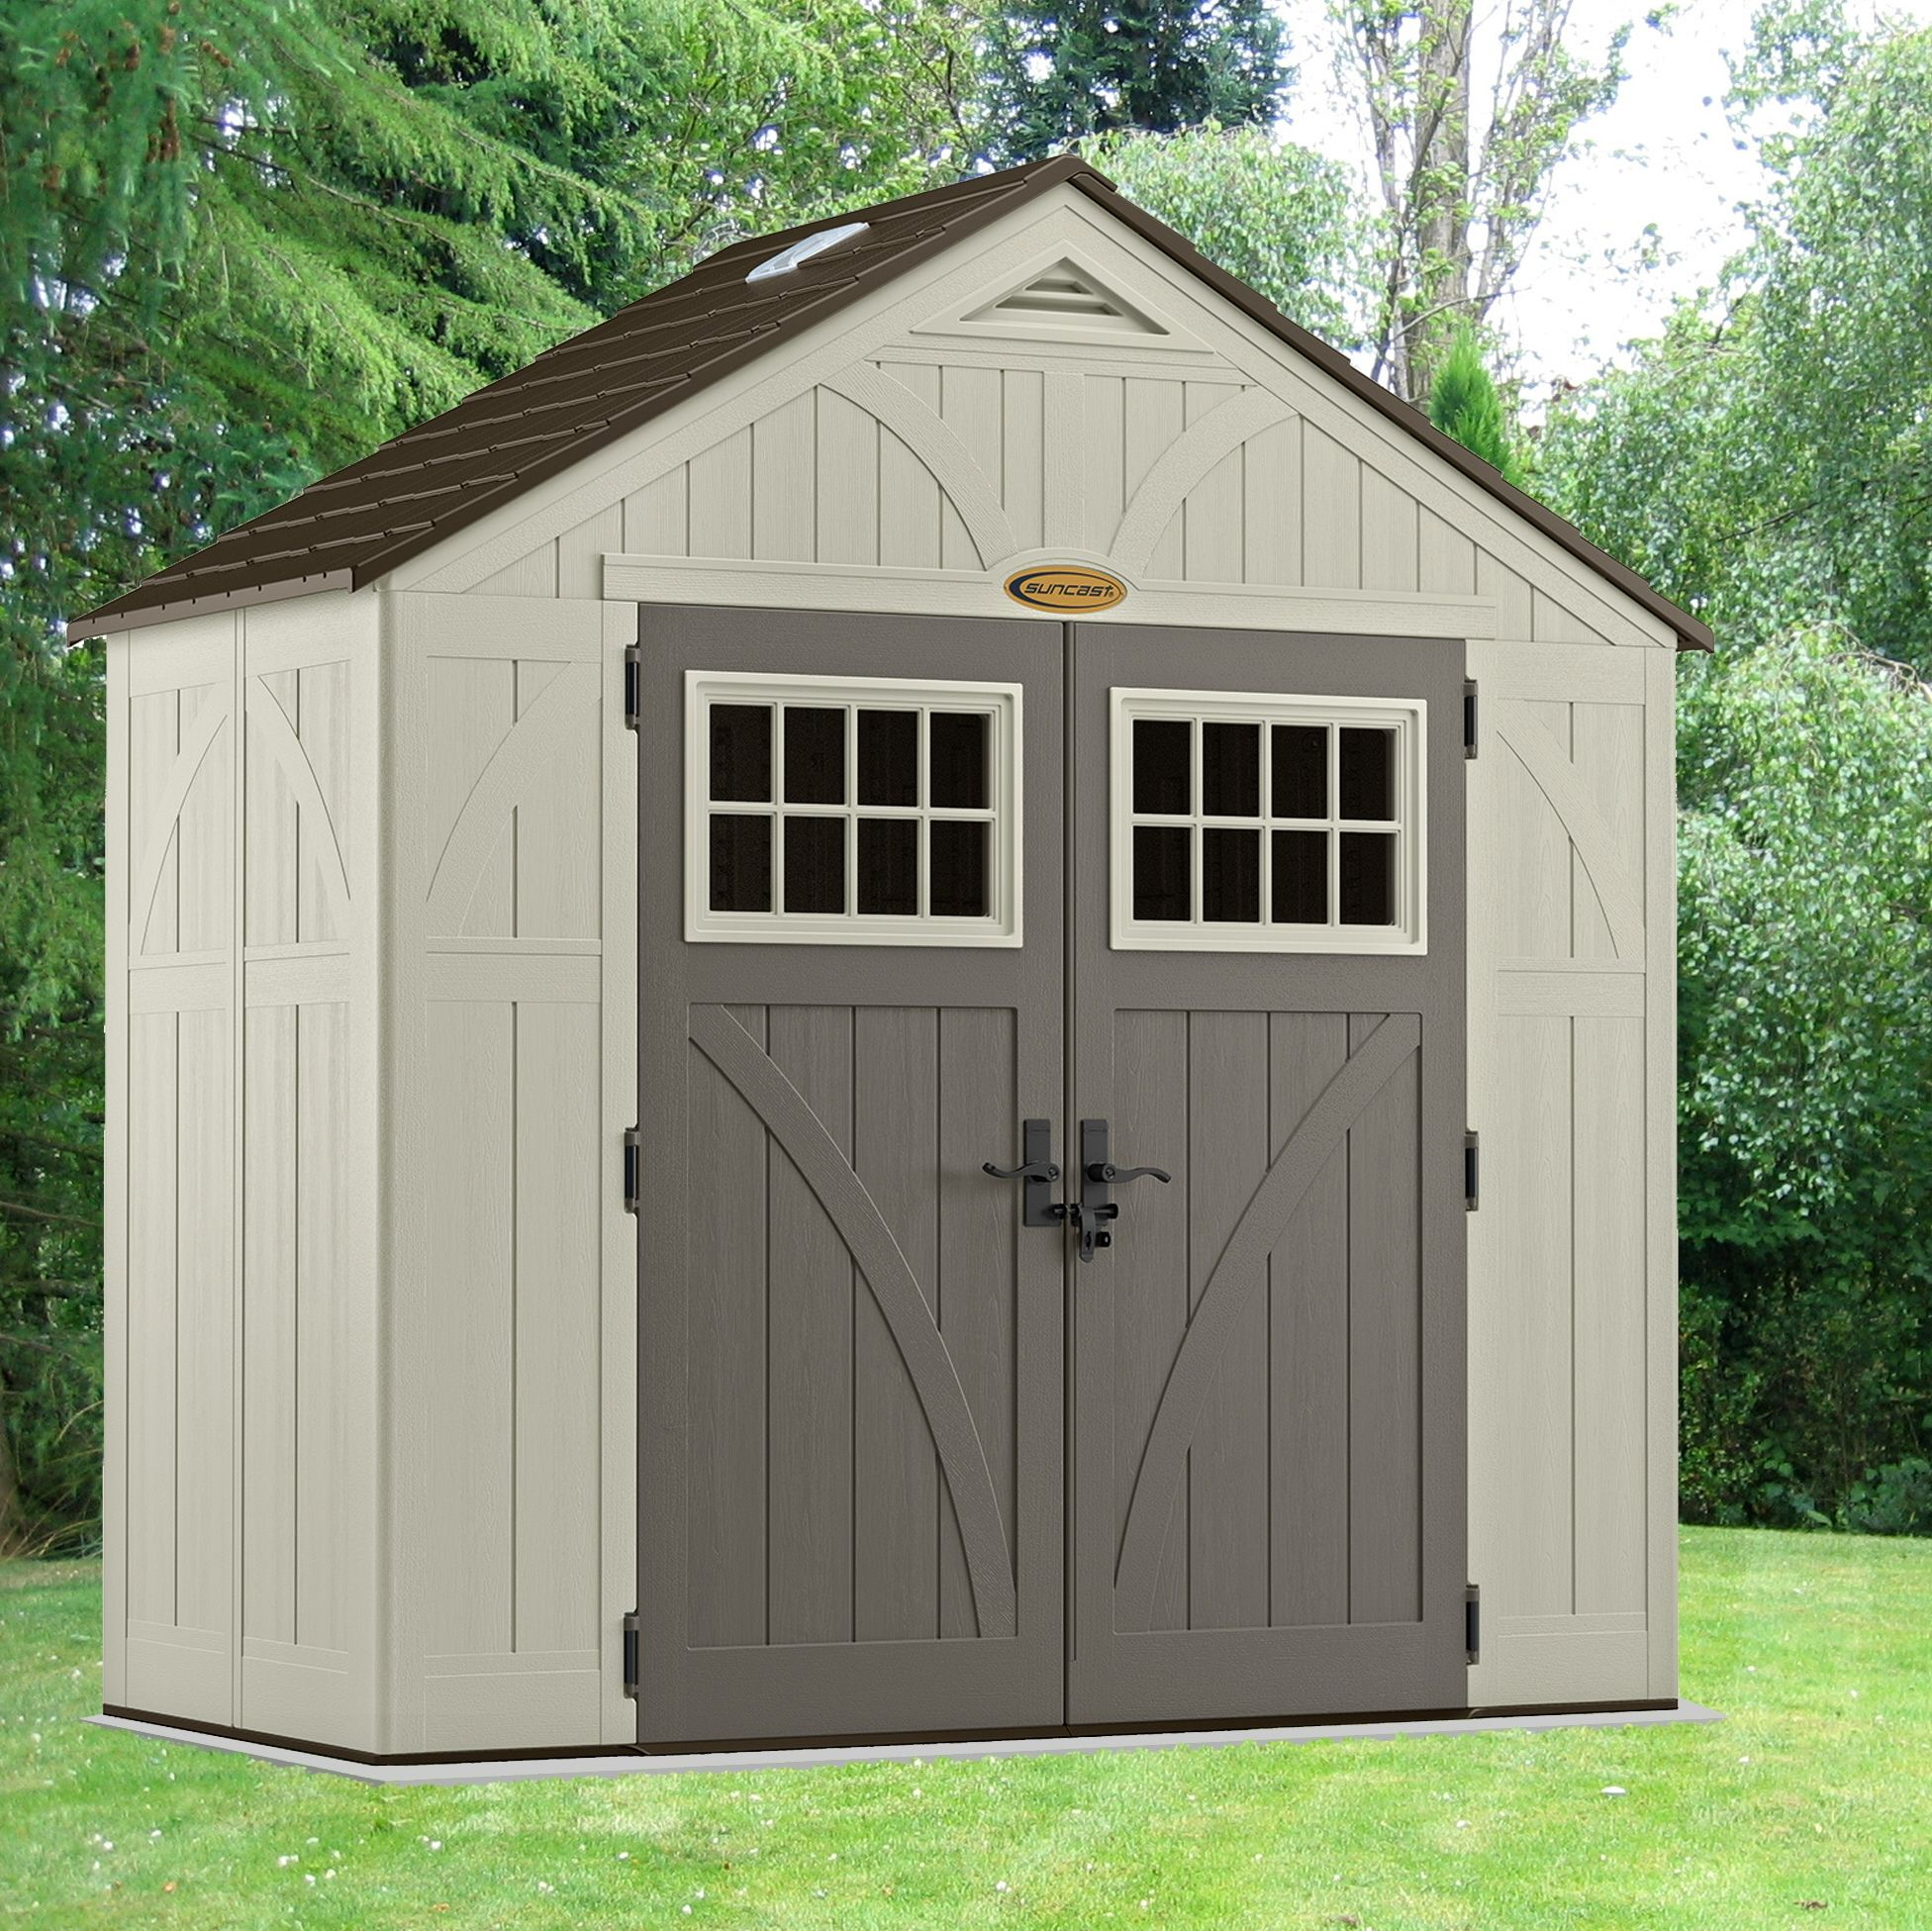 Suncast Tremont 8 X 4 Ft Shed Shed Apex Roof Garden